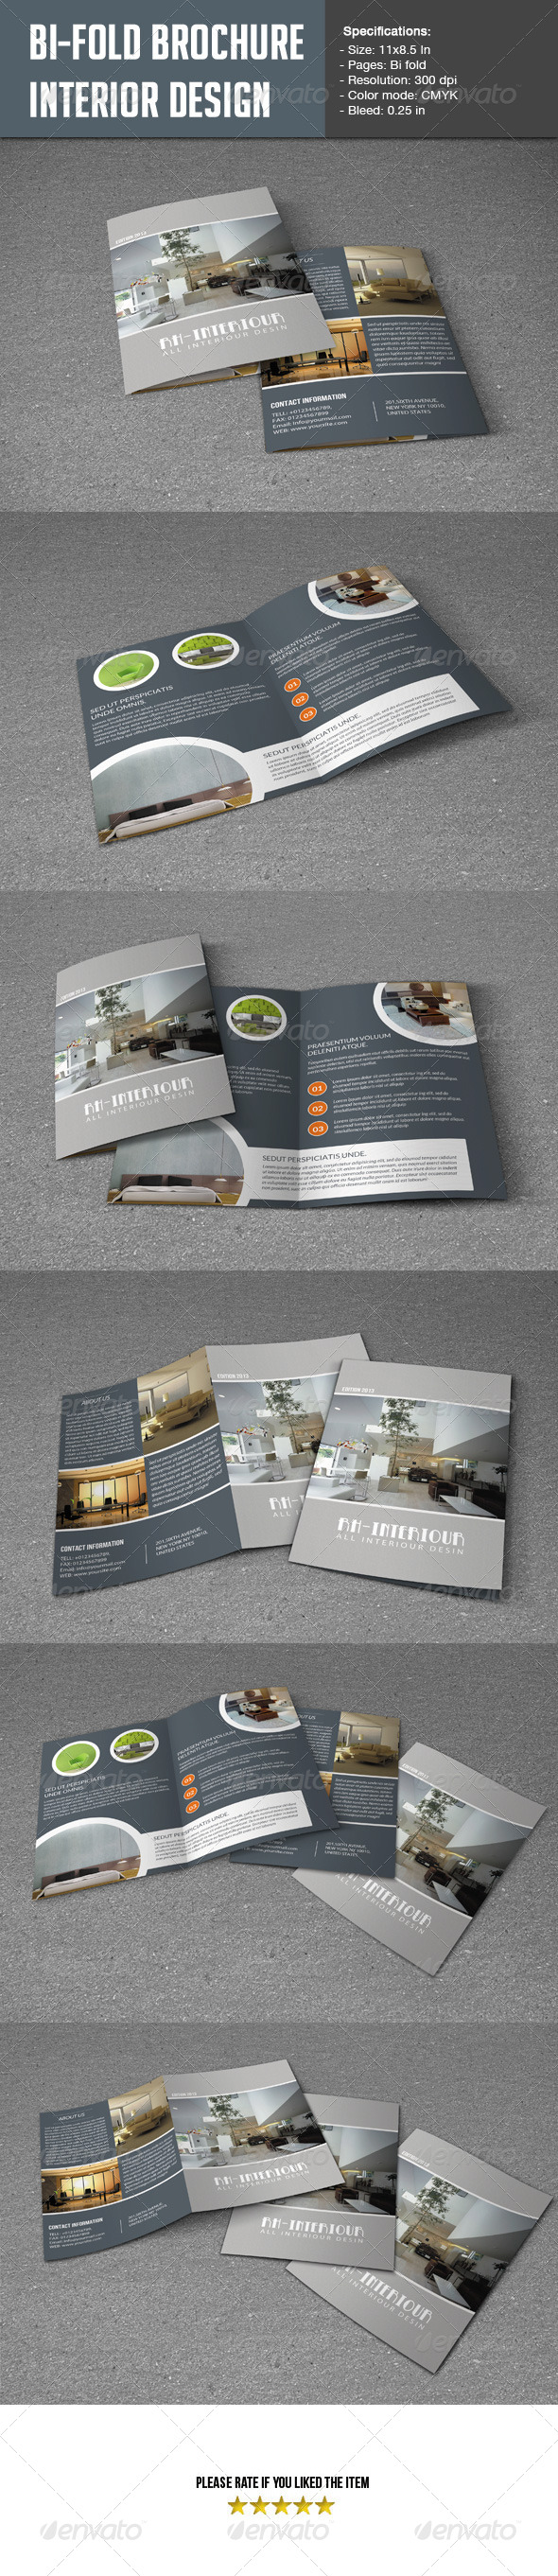 GraphicRiver Bifold Brochure for Interior Design 5545001